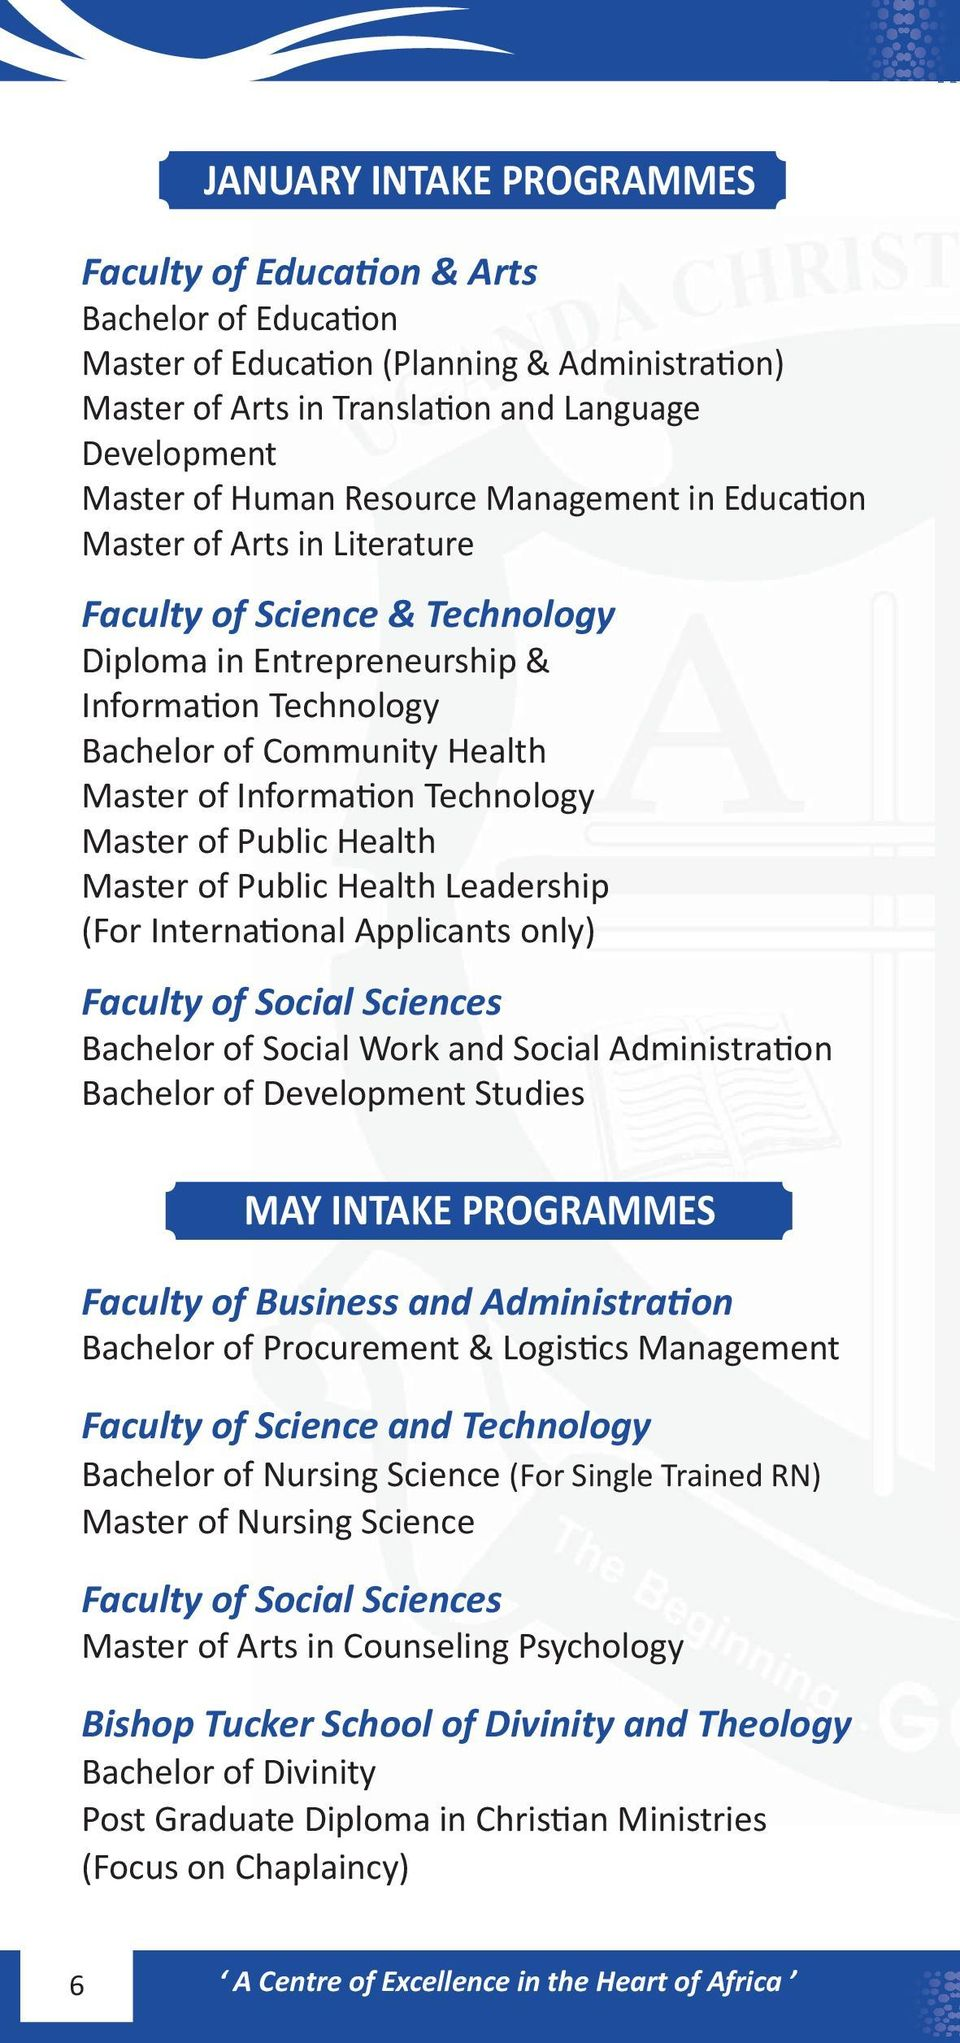 Technology Master of Public Health Master of Public Health Leadership (For International Applicants only) Faculty of Social Sciences Bachelor of Social Work and Social Administration Bachelor of